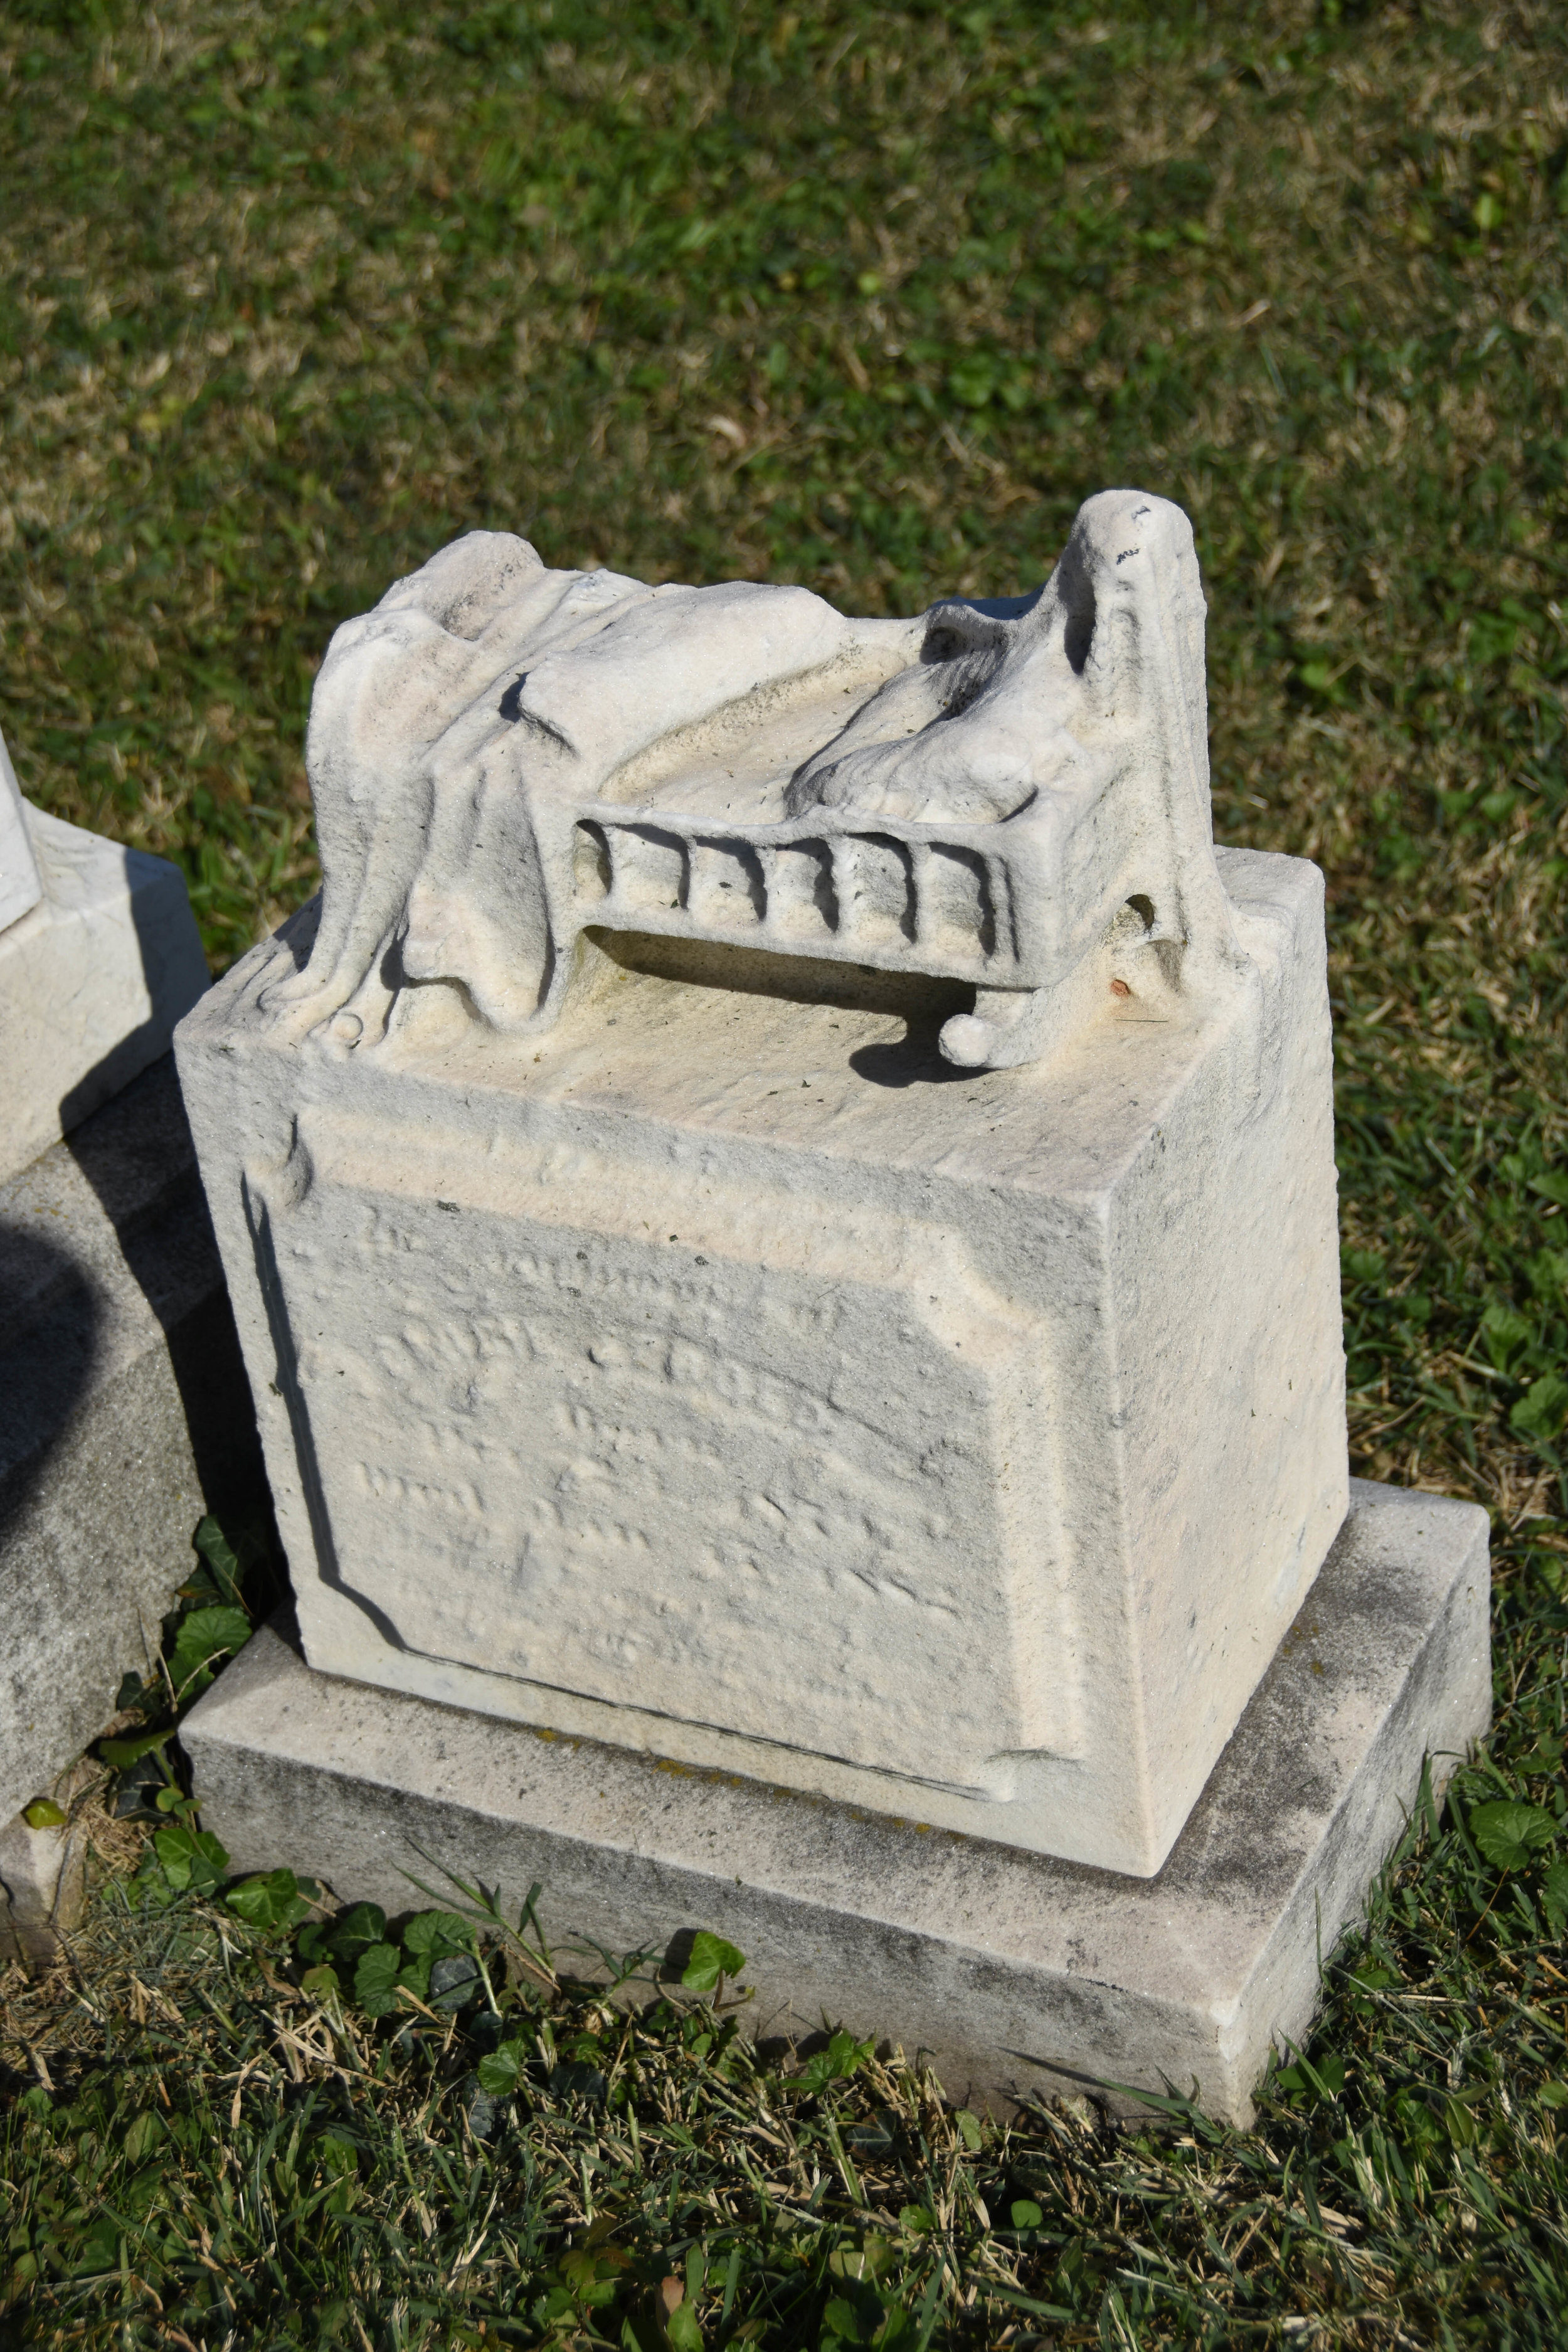 An sculpture of a crib, worn by time, is still visible atop this stone at Baltimore Cemetery.